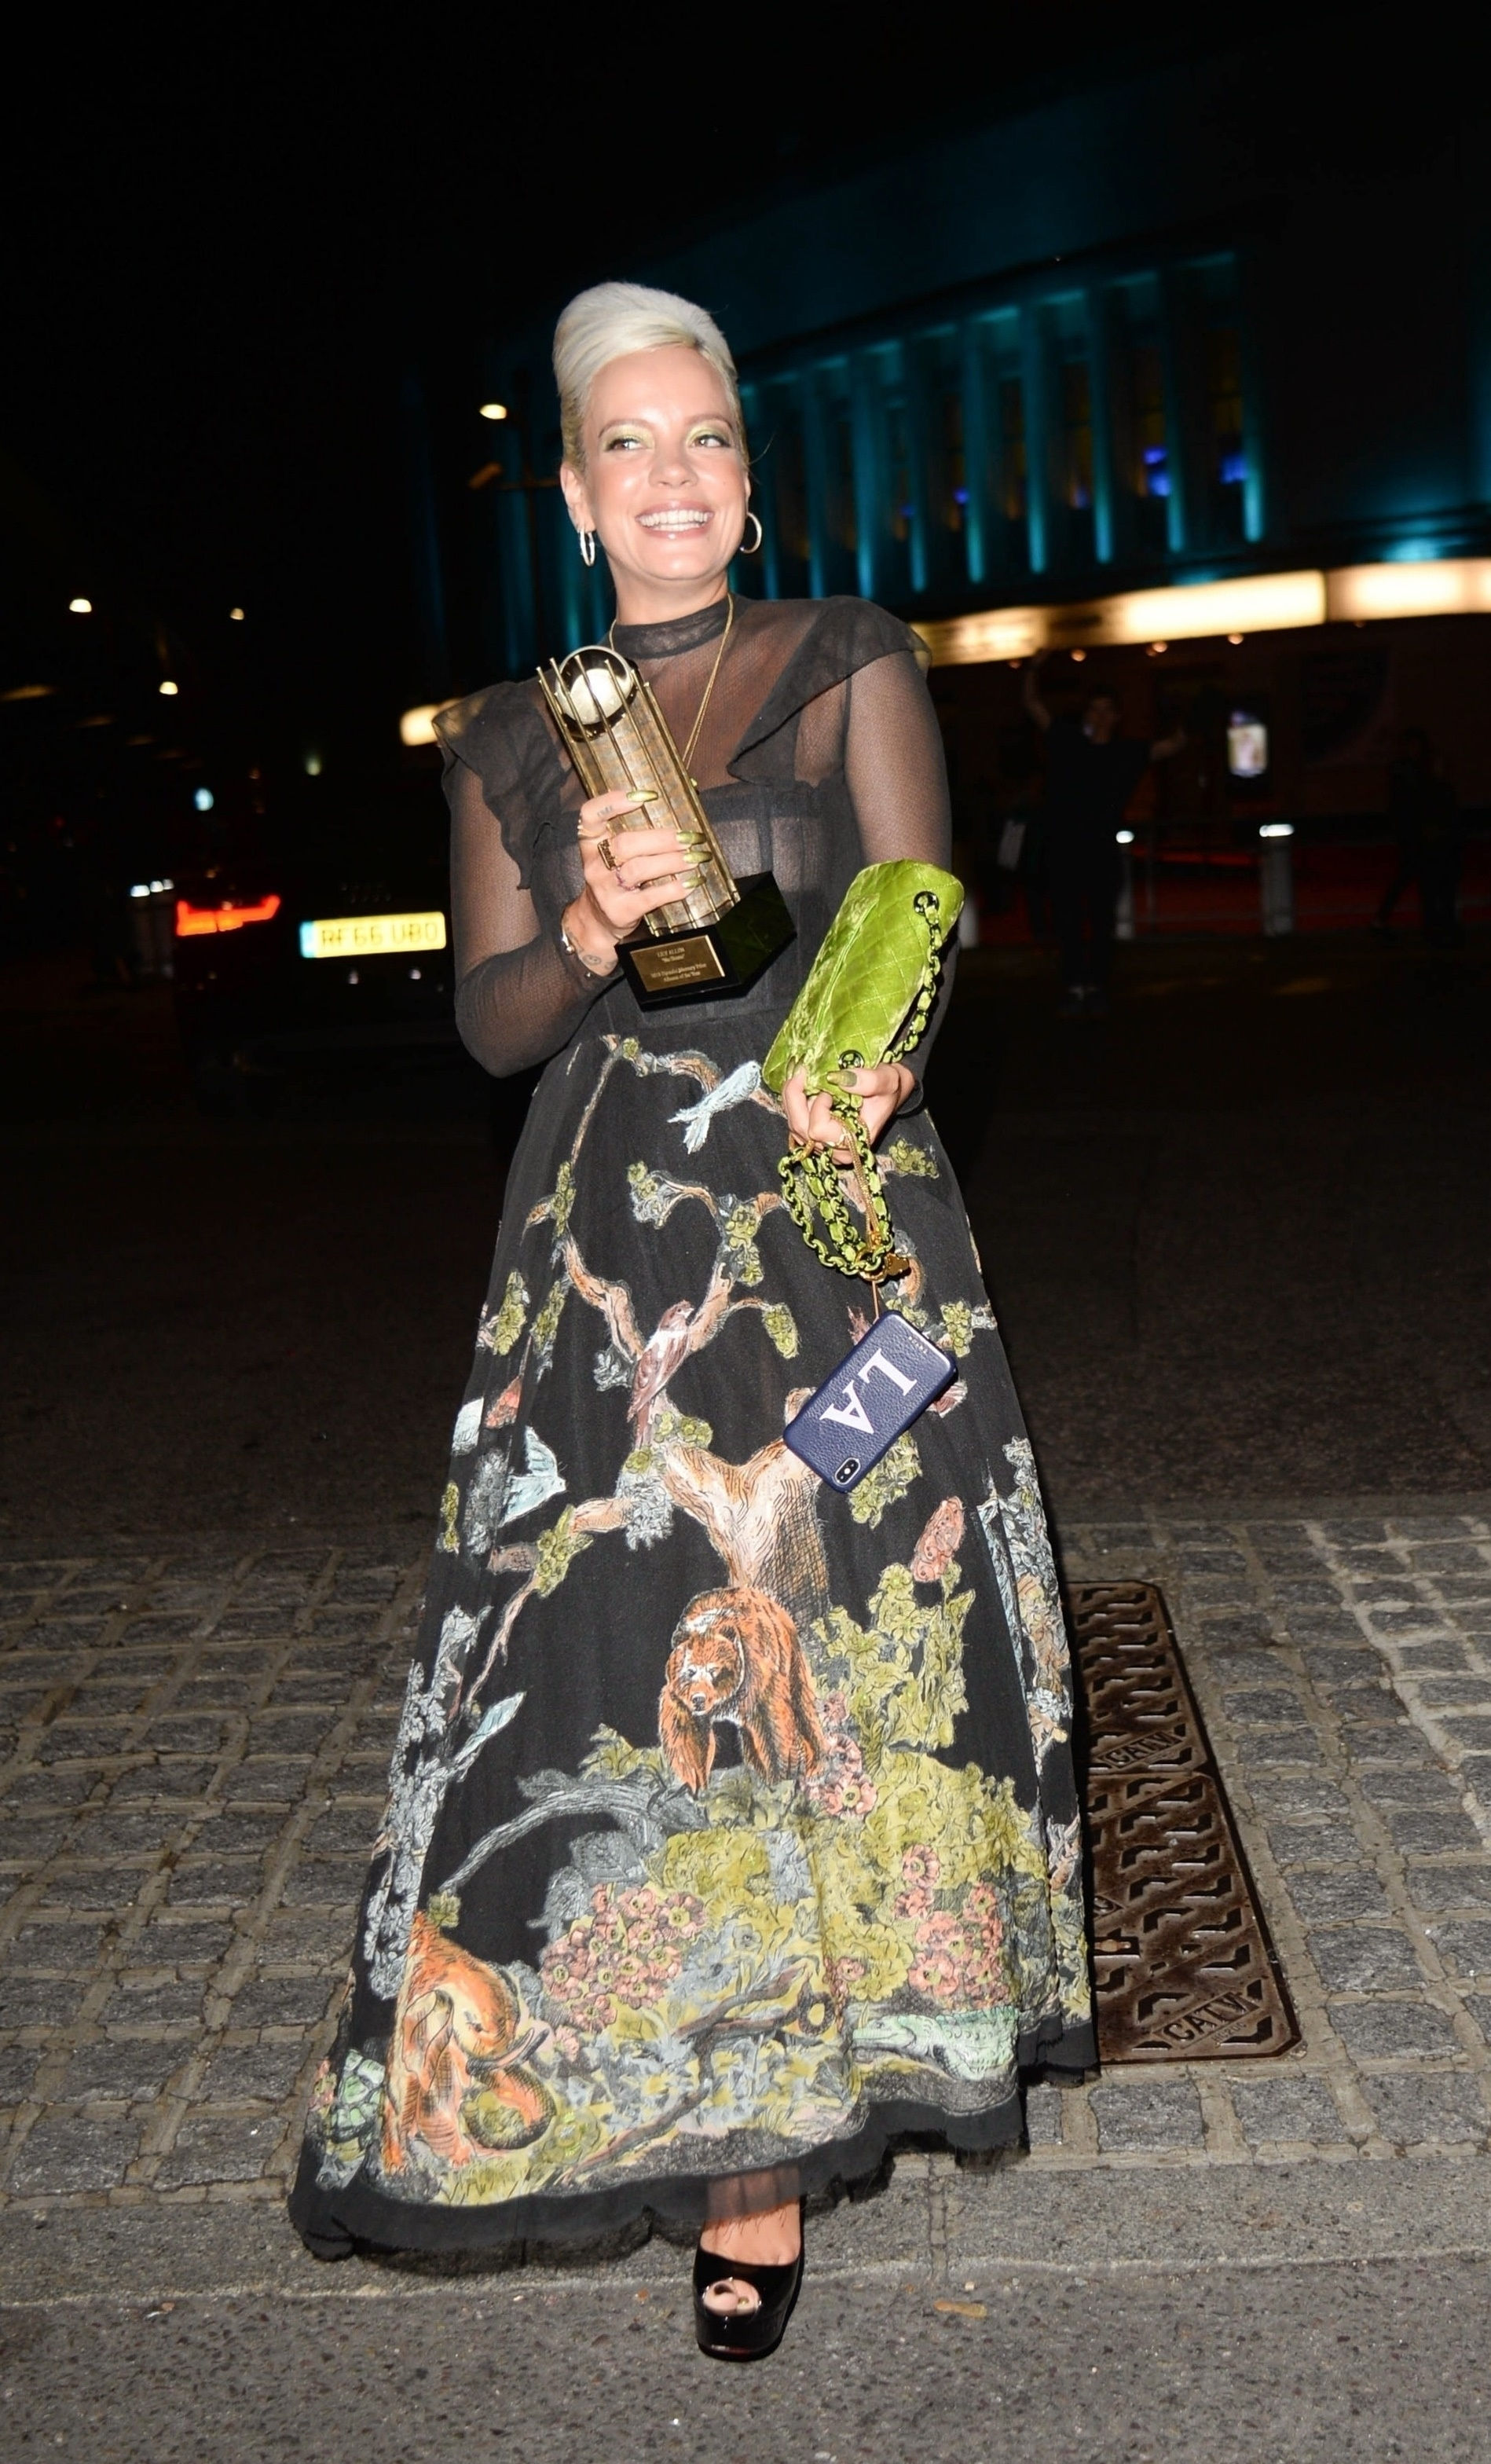 0919040453772_15_Lily-Allen-See-Through-TheFappeningBlog.com-16.jpg